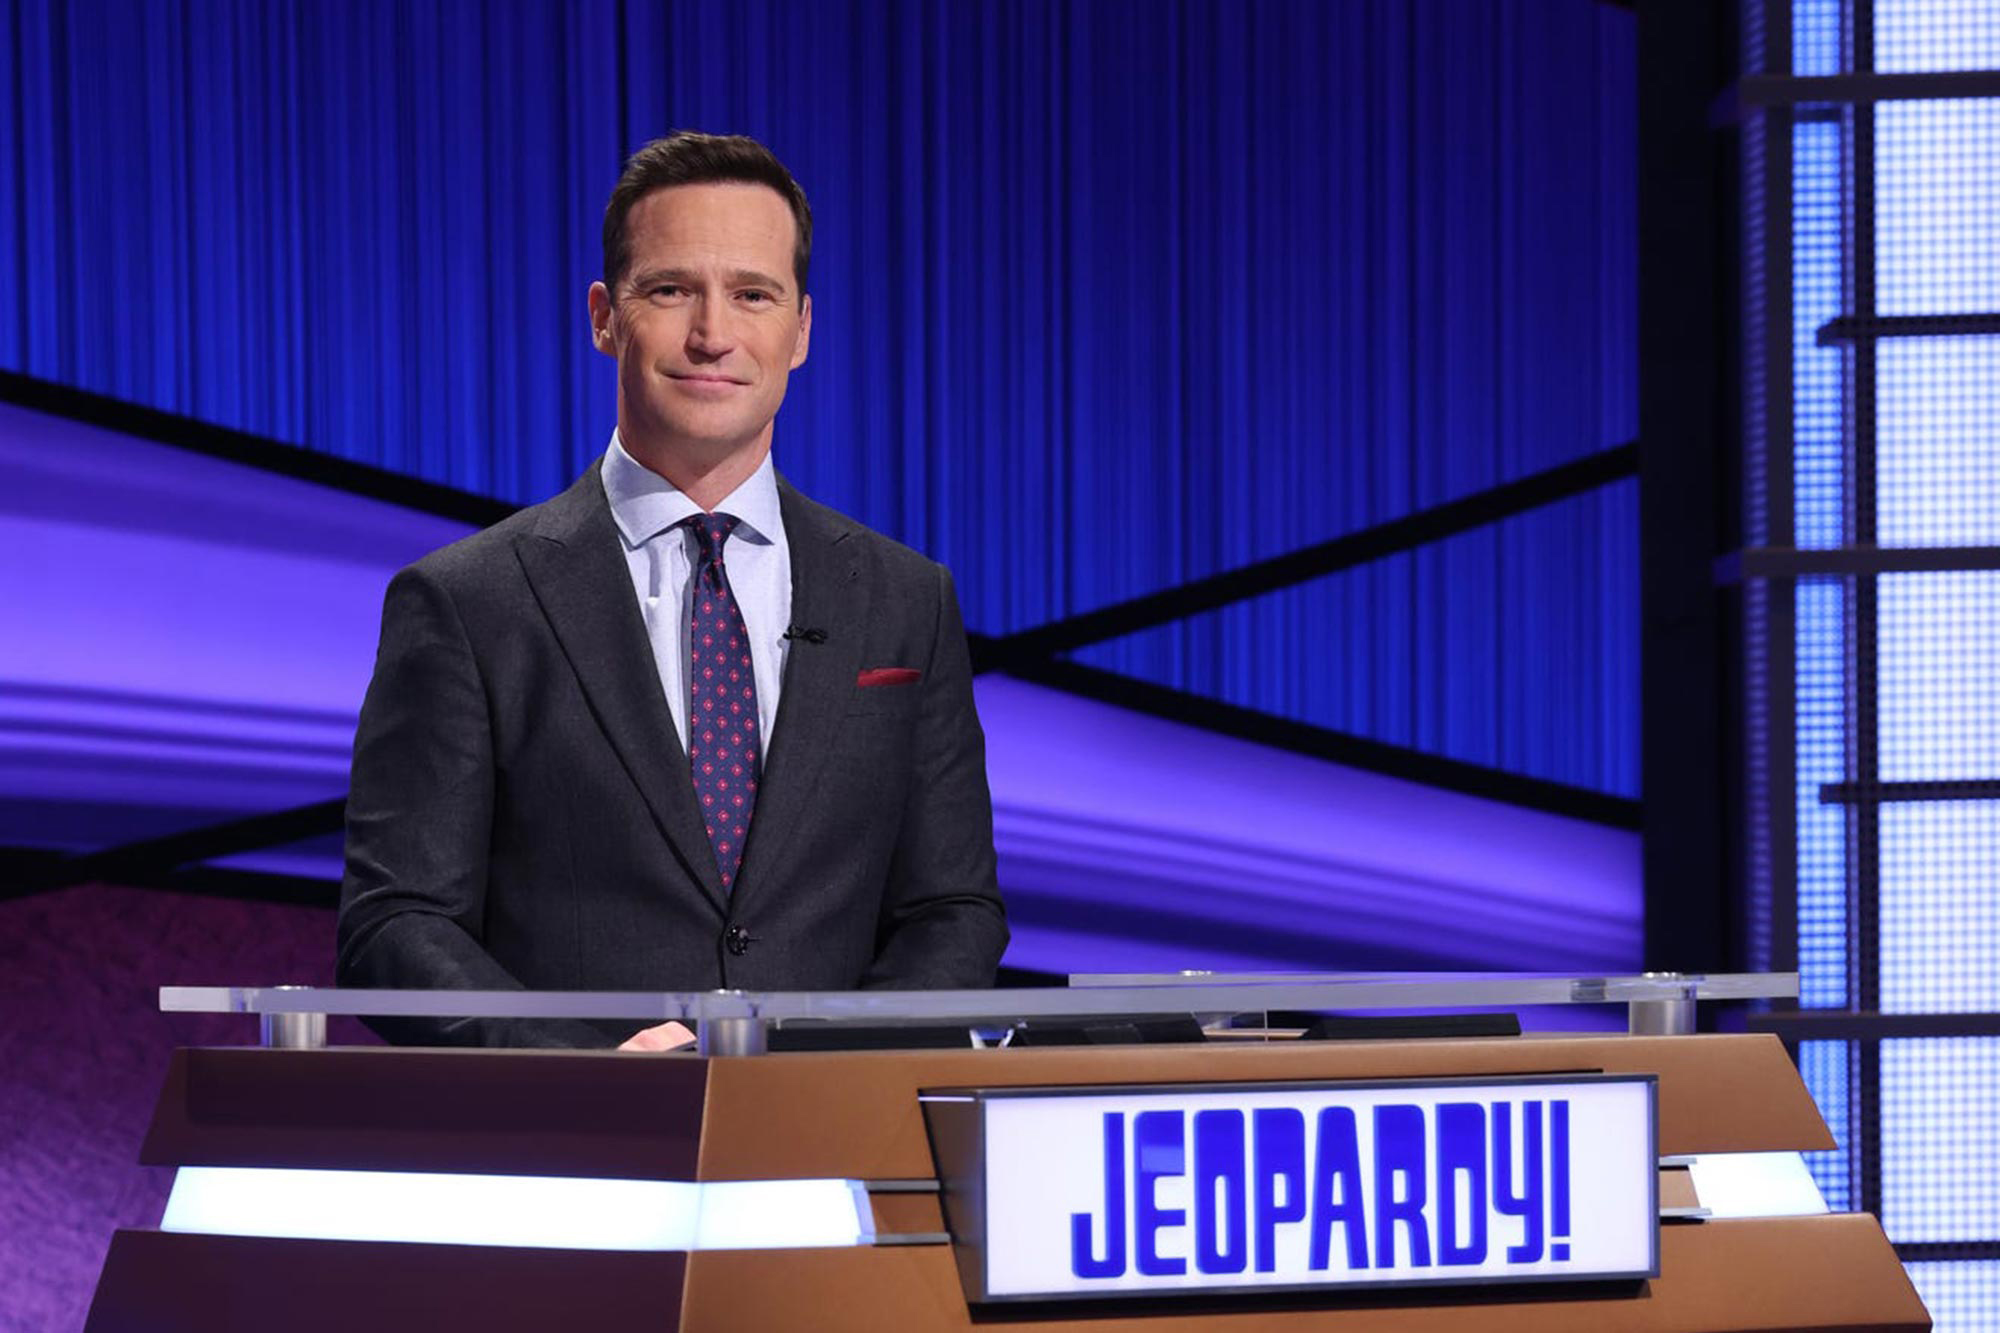 Mike Richards steps down as new 'Jeopardy!' host amid scrutiny over past comments